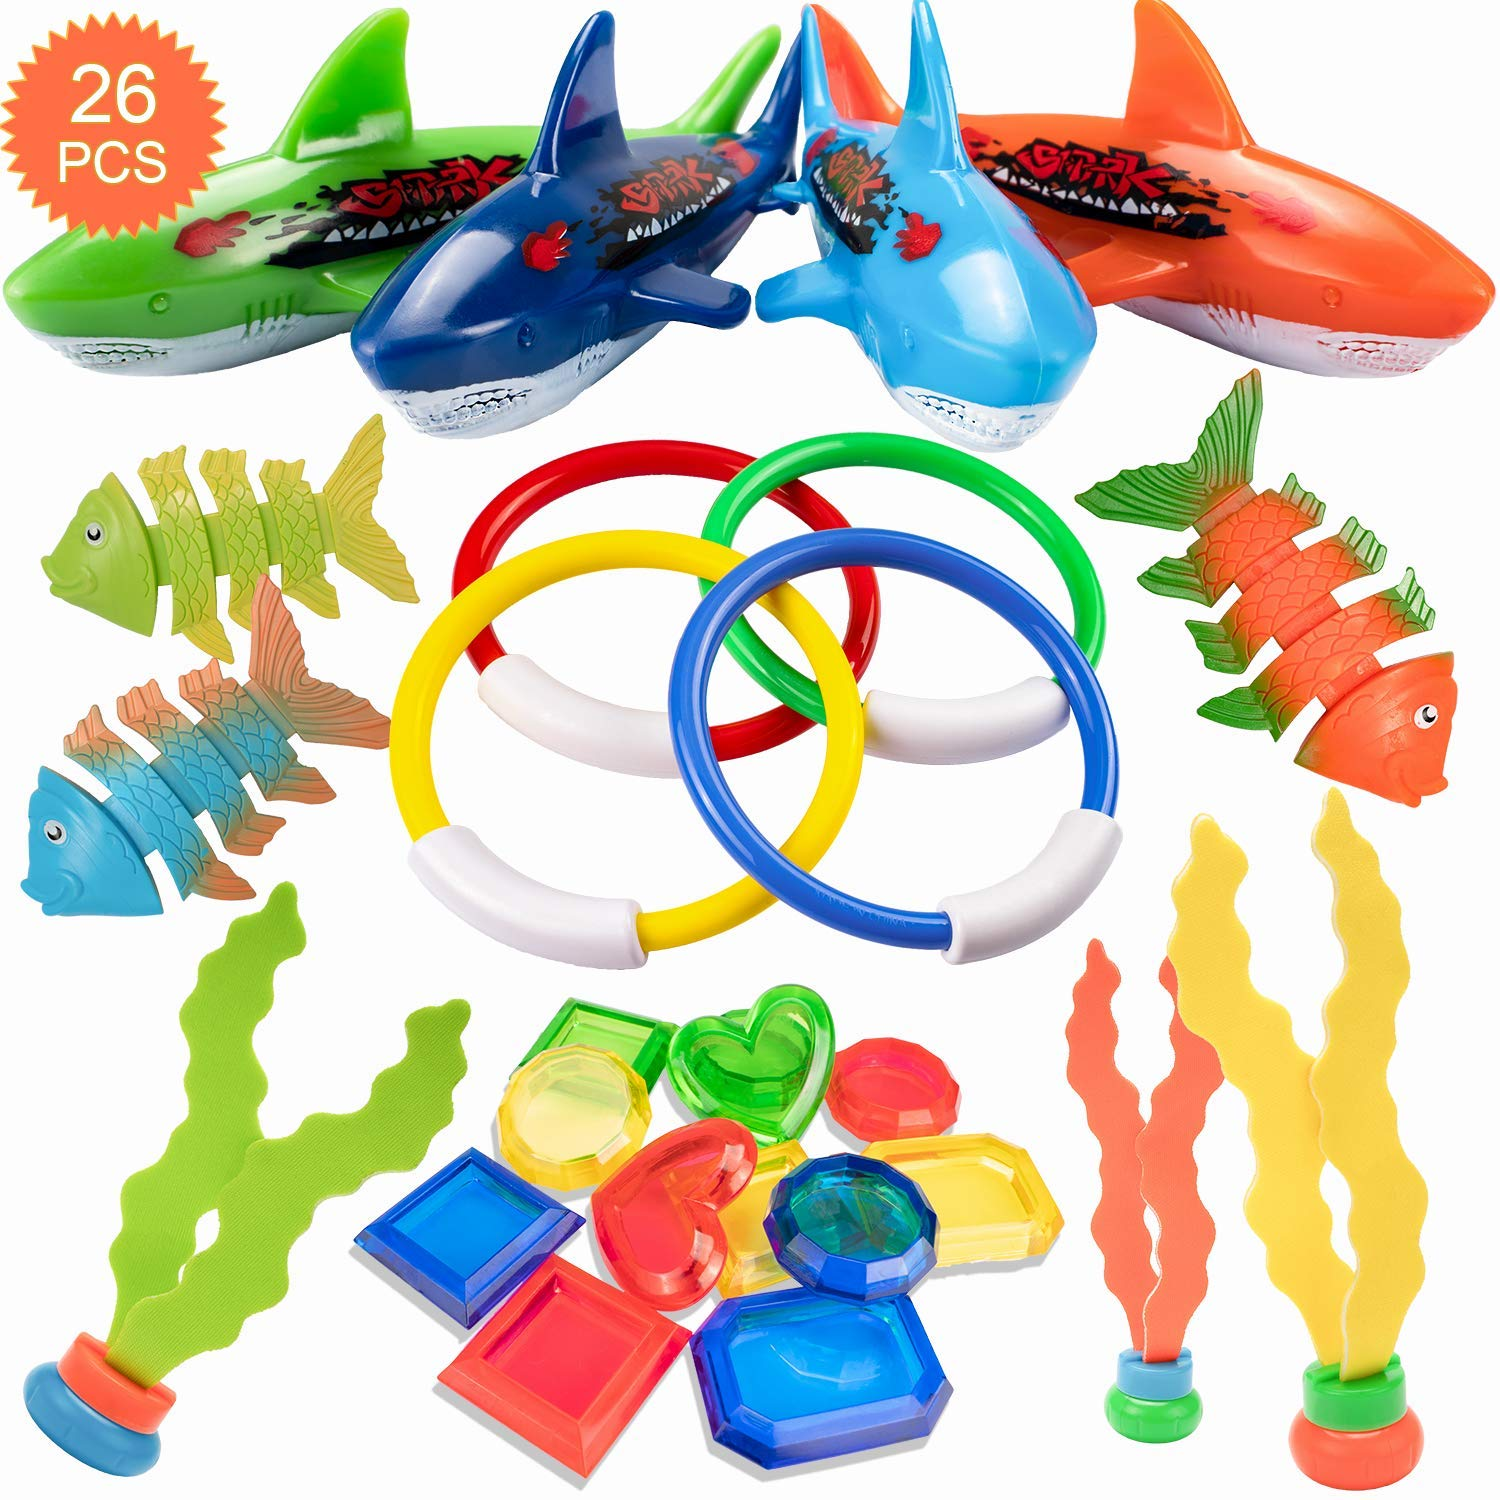 HENMI 26 Pack Diving Toy for Pool Use Underwater Swimming/Diving Pool Toy Rings, Toypedo Bandits,Stringy Octopus and Diving Fish with Under Water Treasures Gift Set Bundle,Ages 3 and Up by HENMI